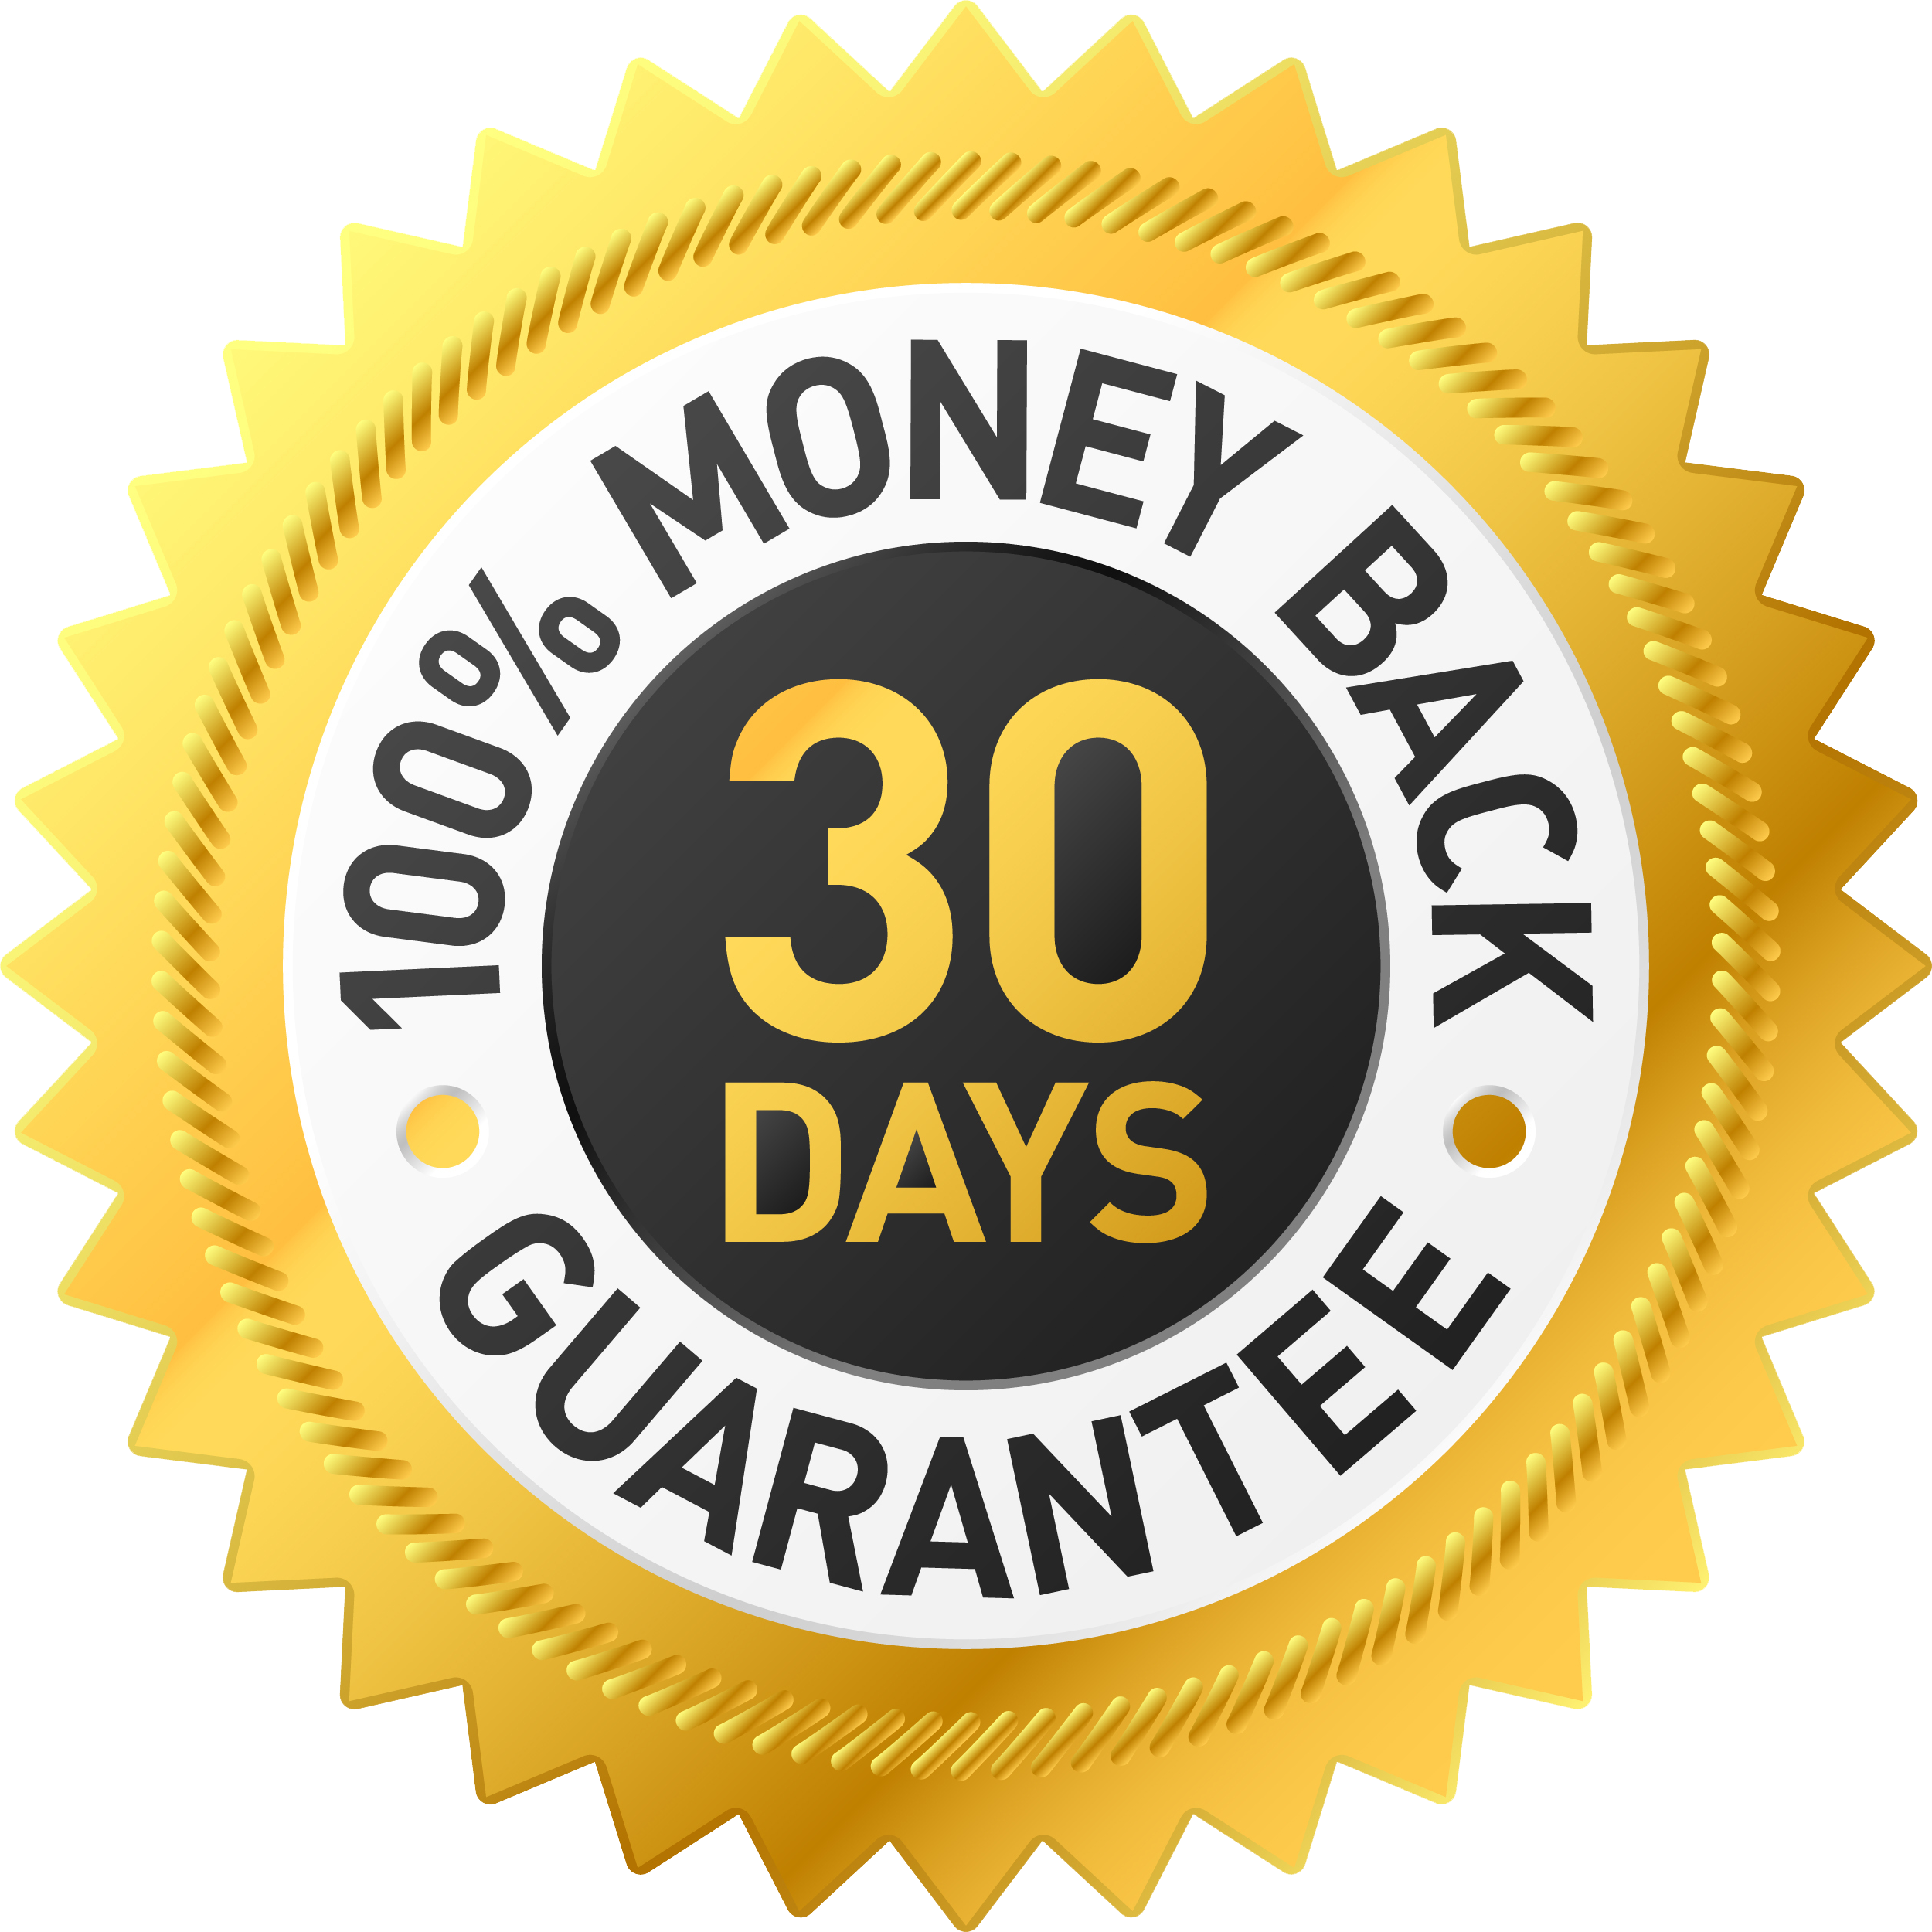 30 Day Money Back Guarantee Transparent - 15977 - TransparentPNG